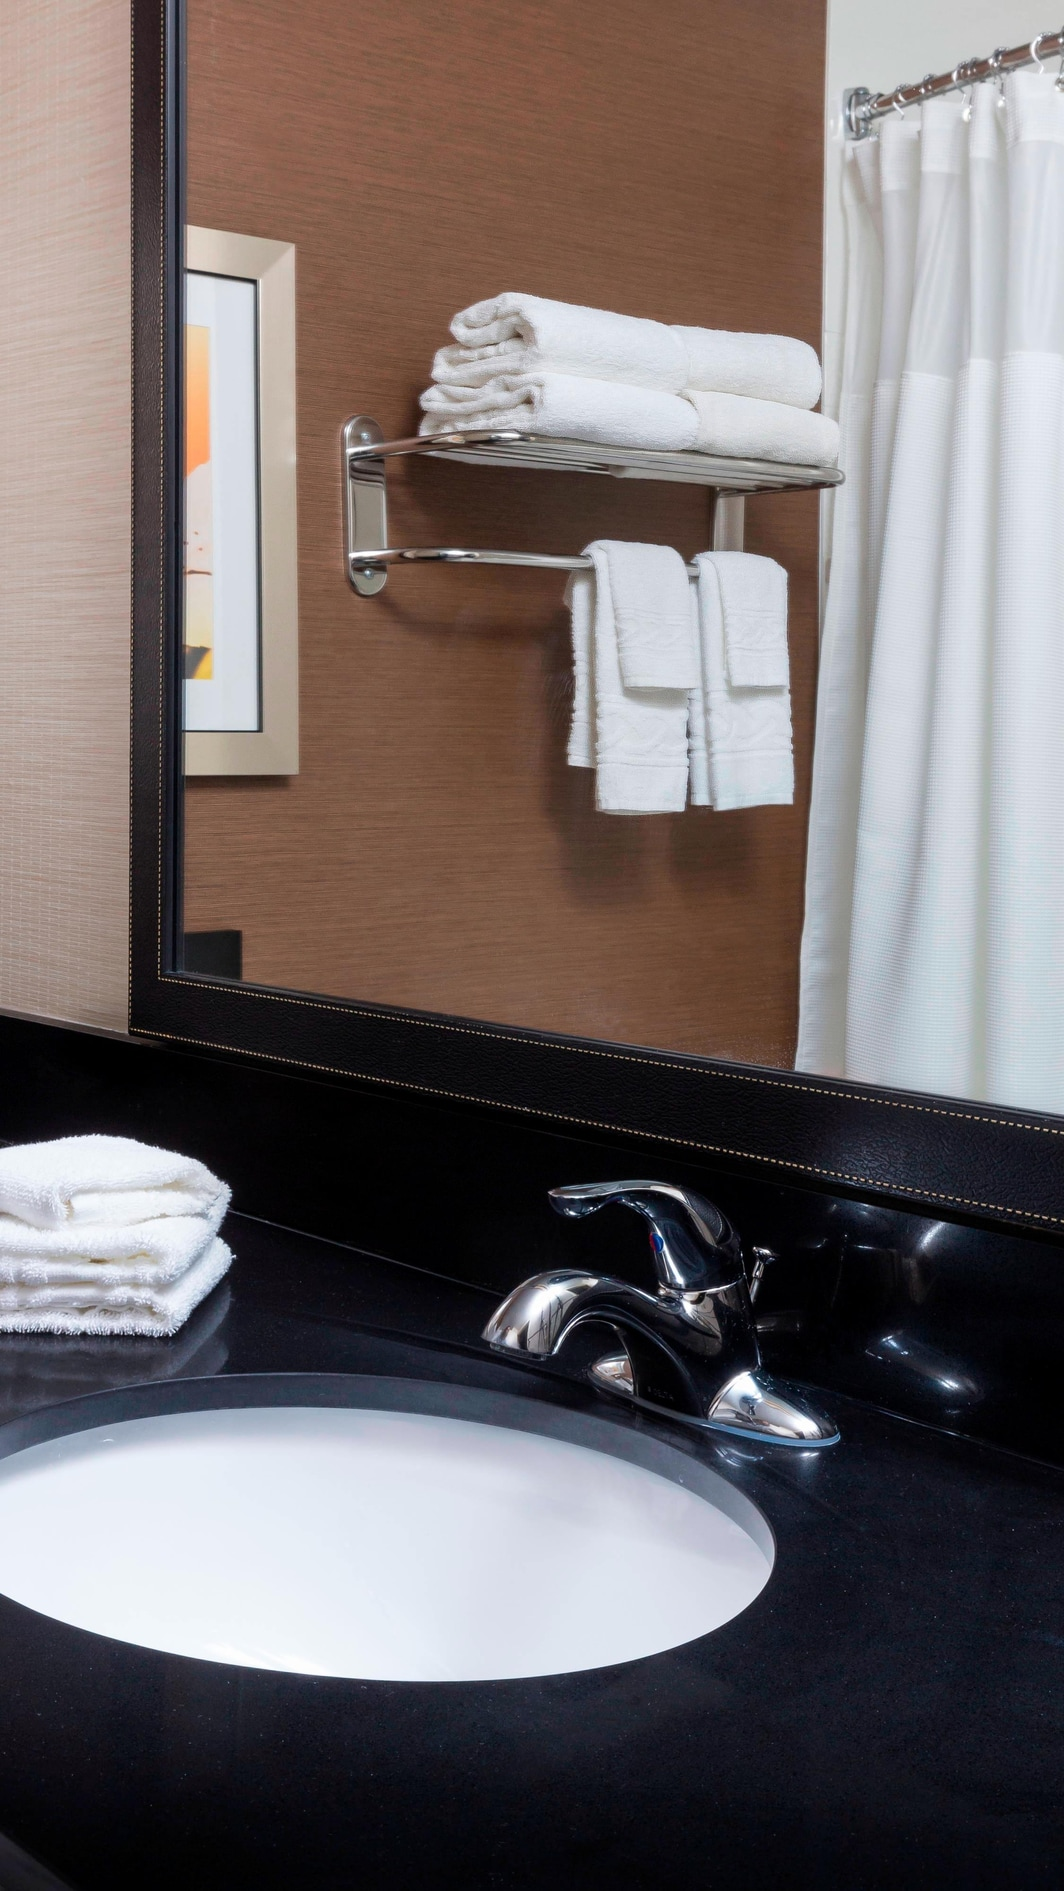 Guest bathroom with complimentary toiletries